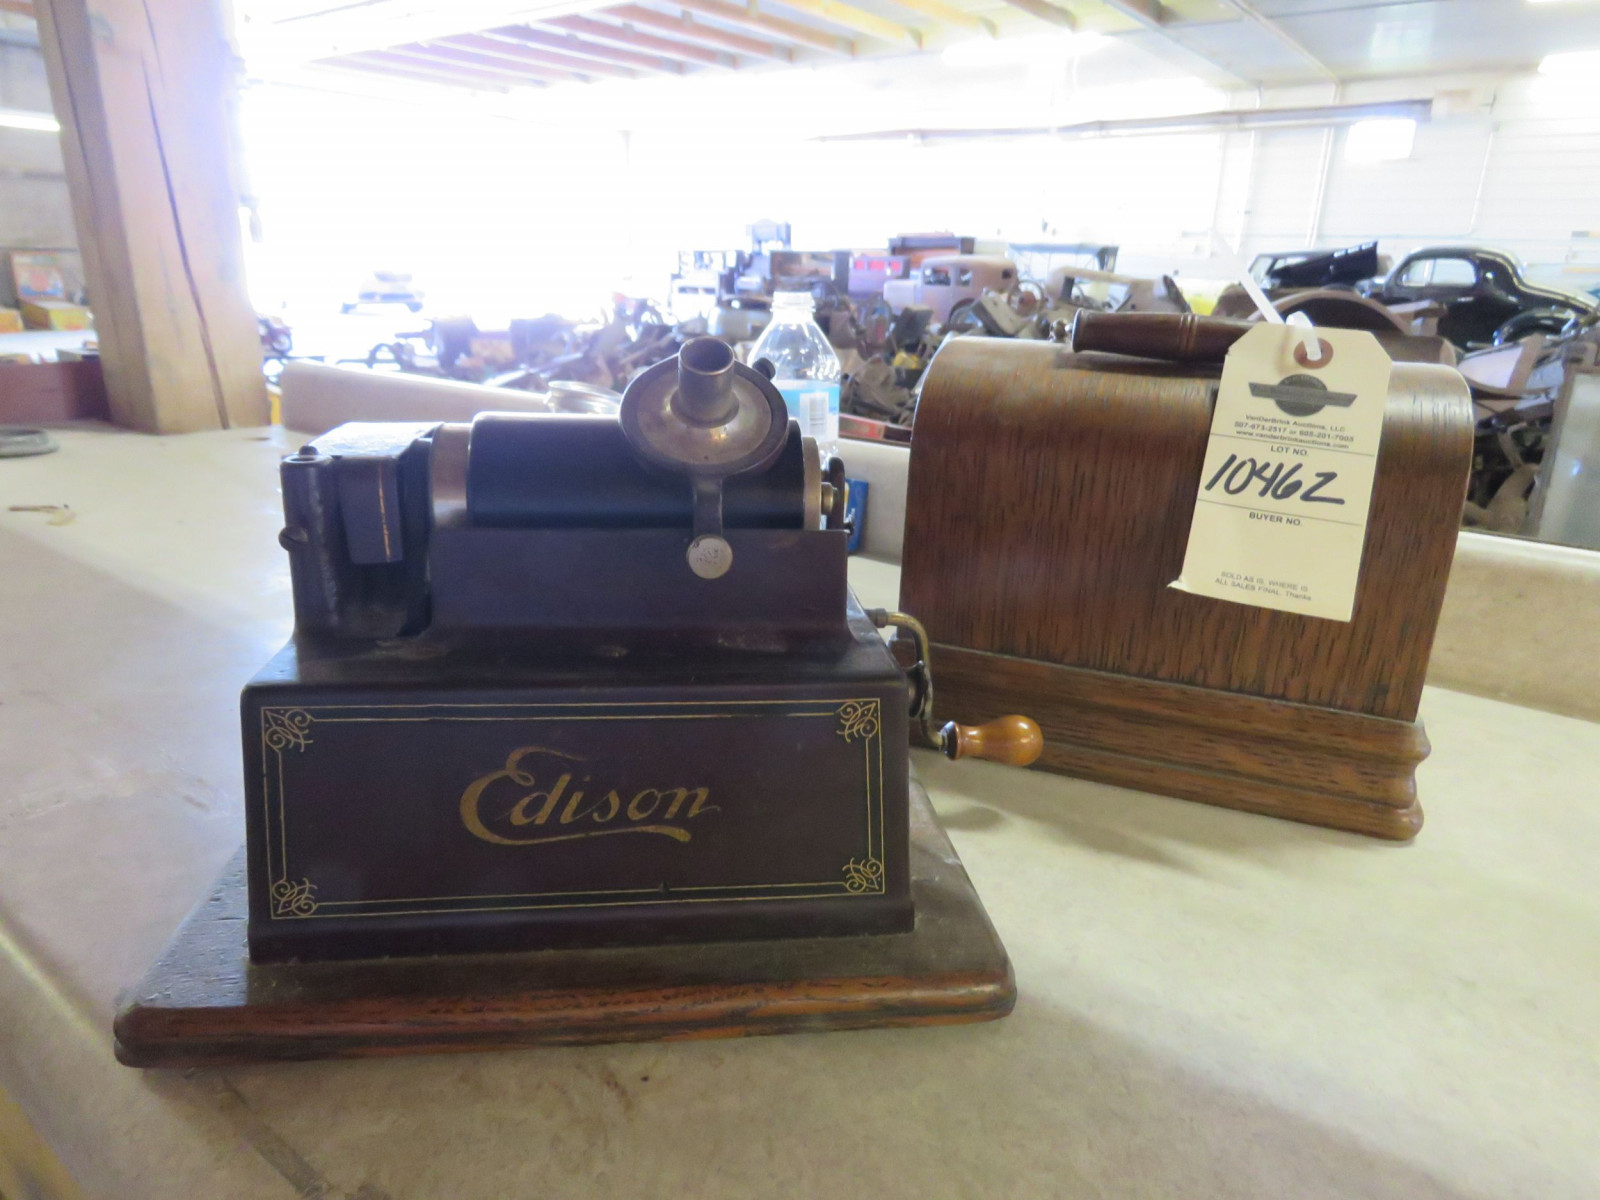 Vintage Edison Gem Combination Phonograph - Image 1